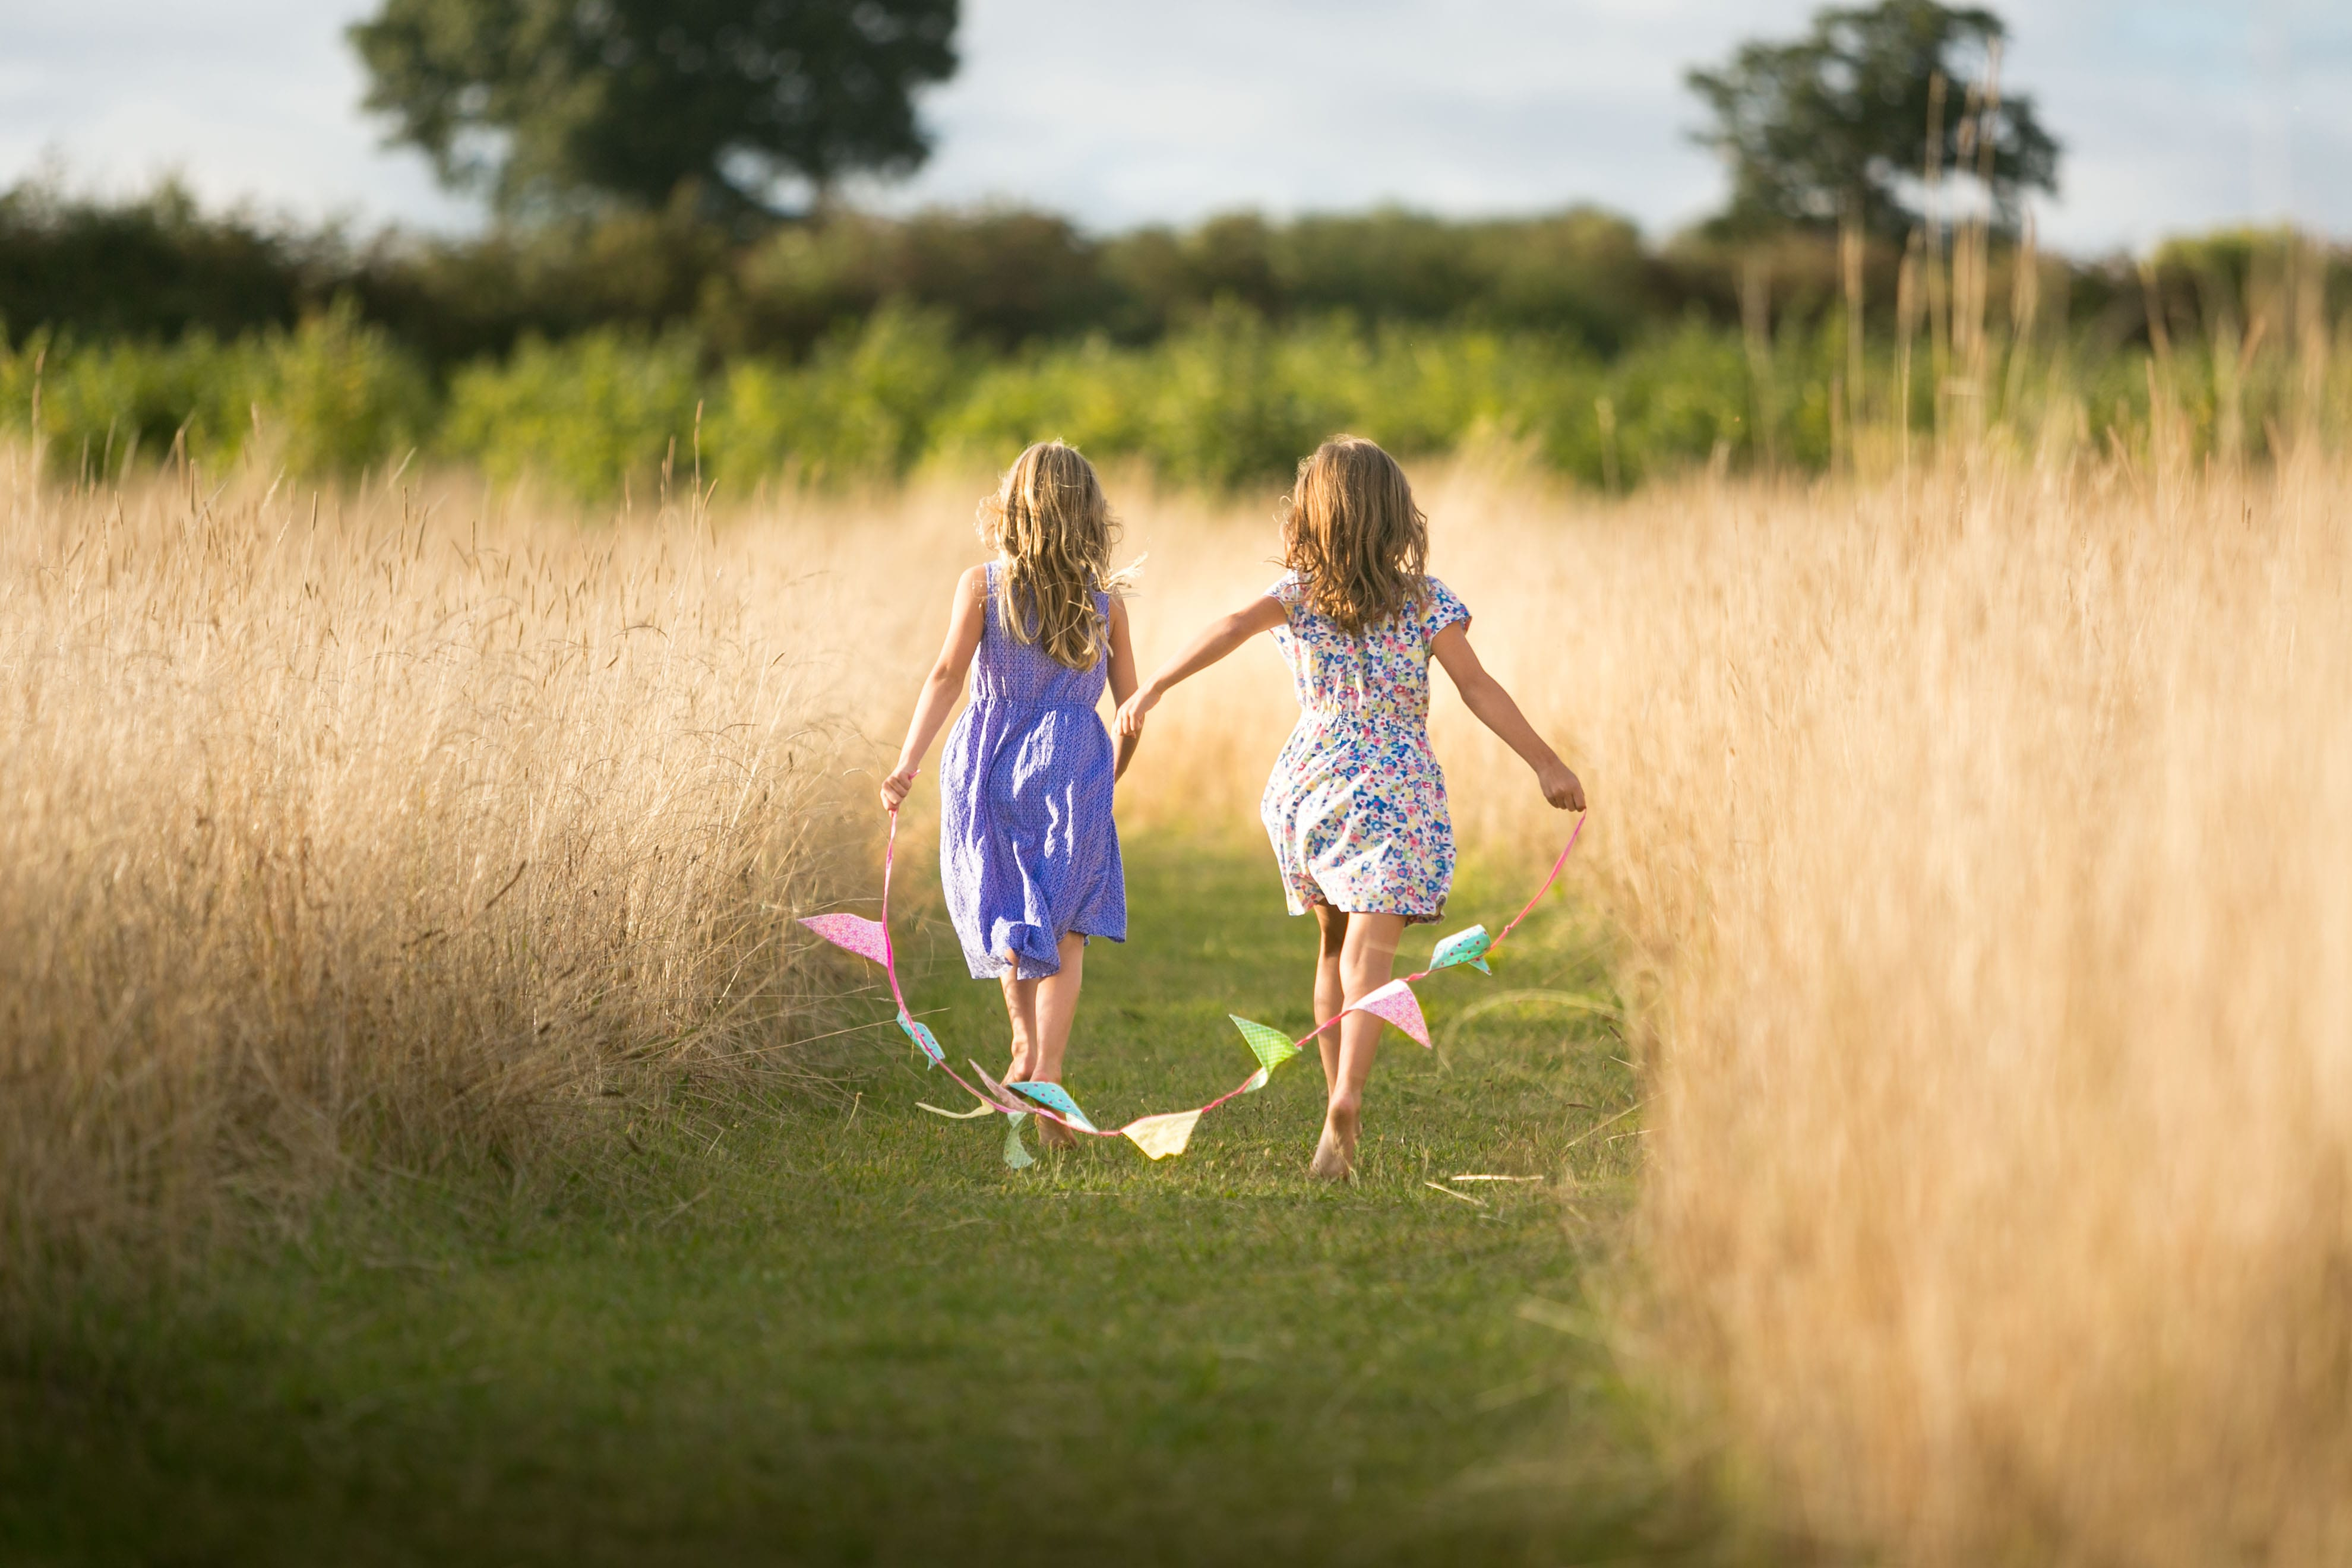 Heartwood family outdoor St Albans photographer photoshoot near me